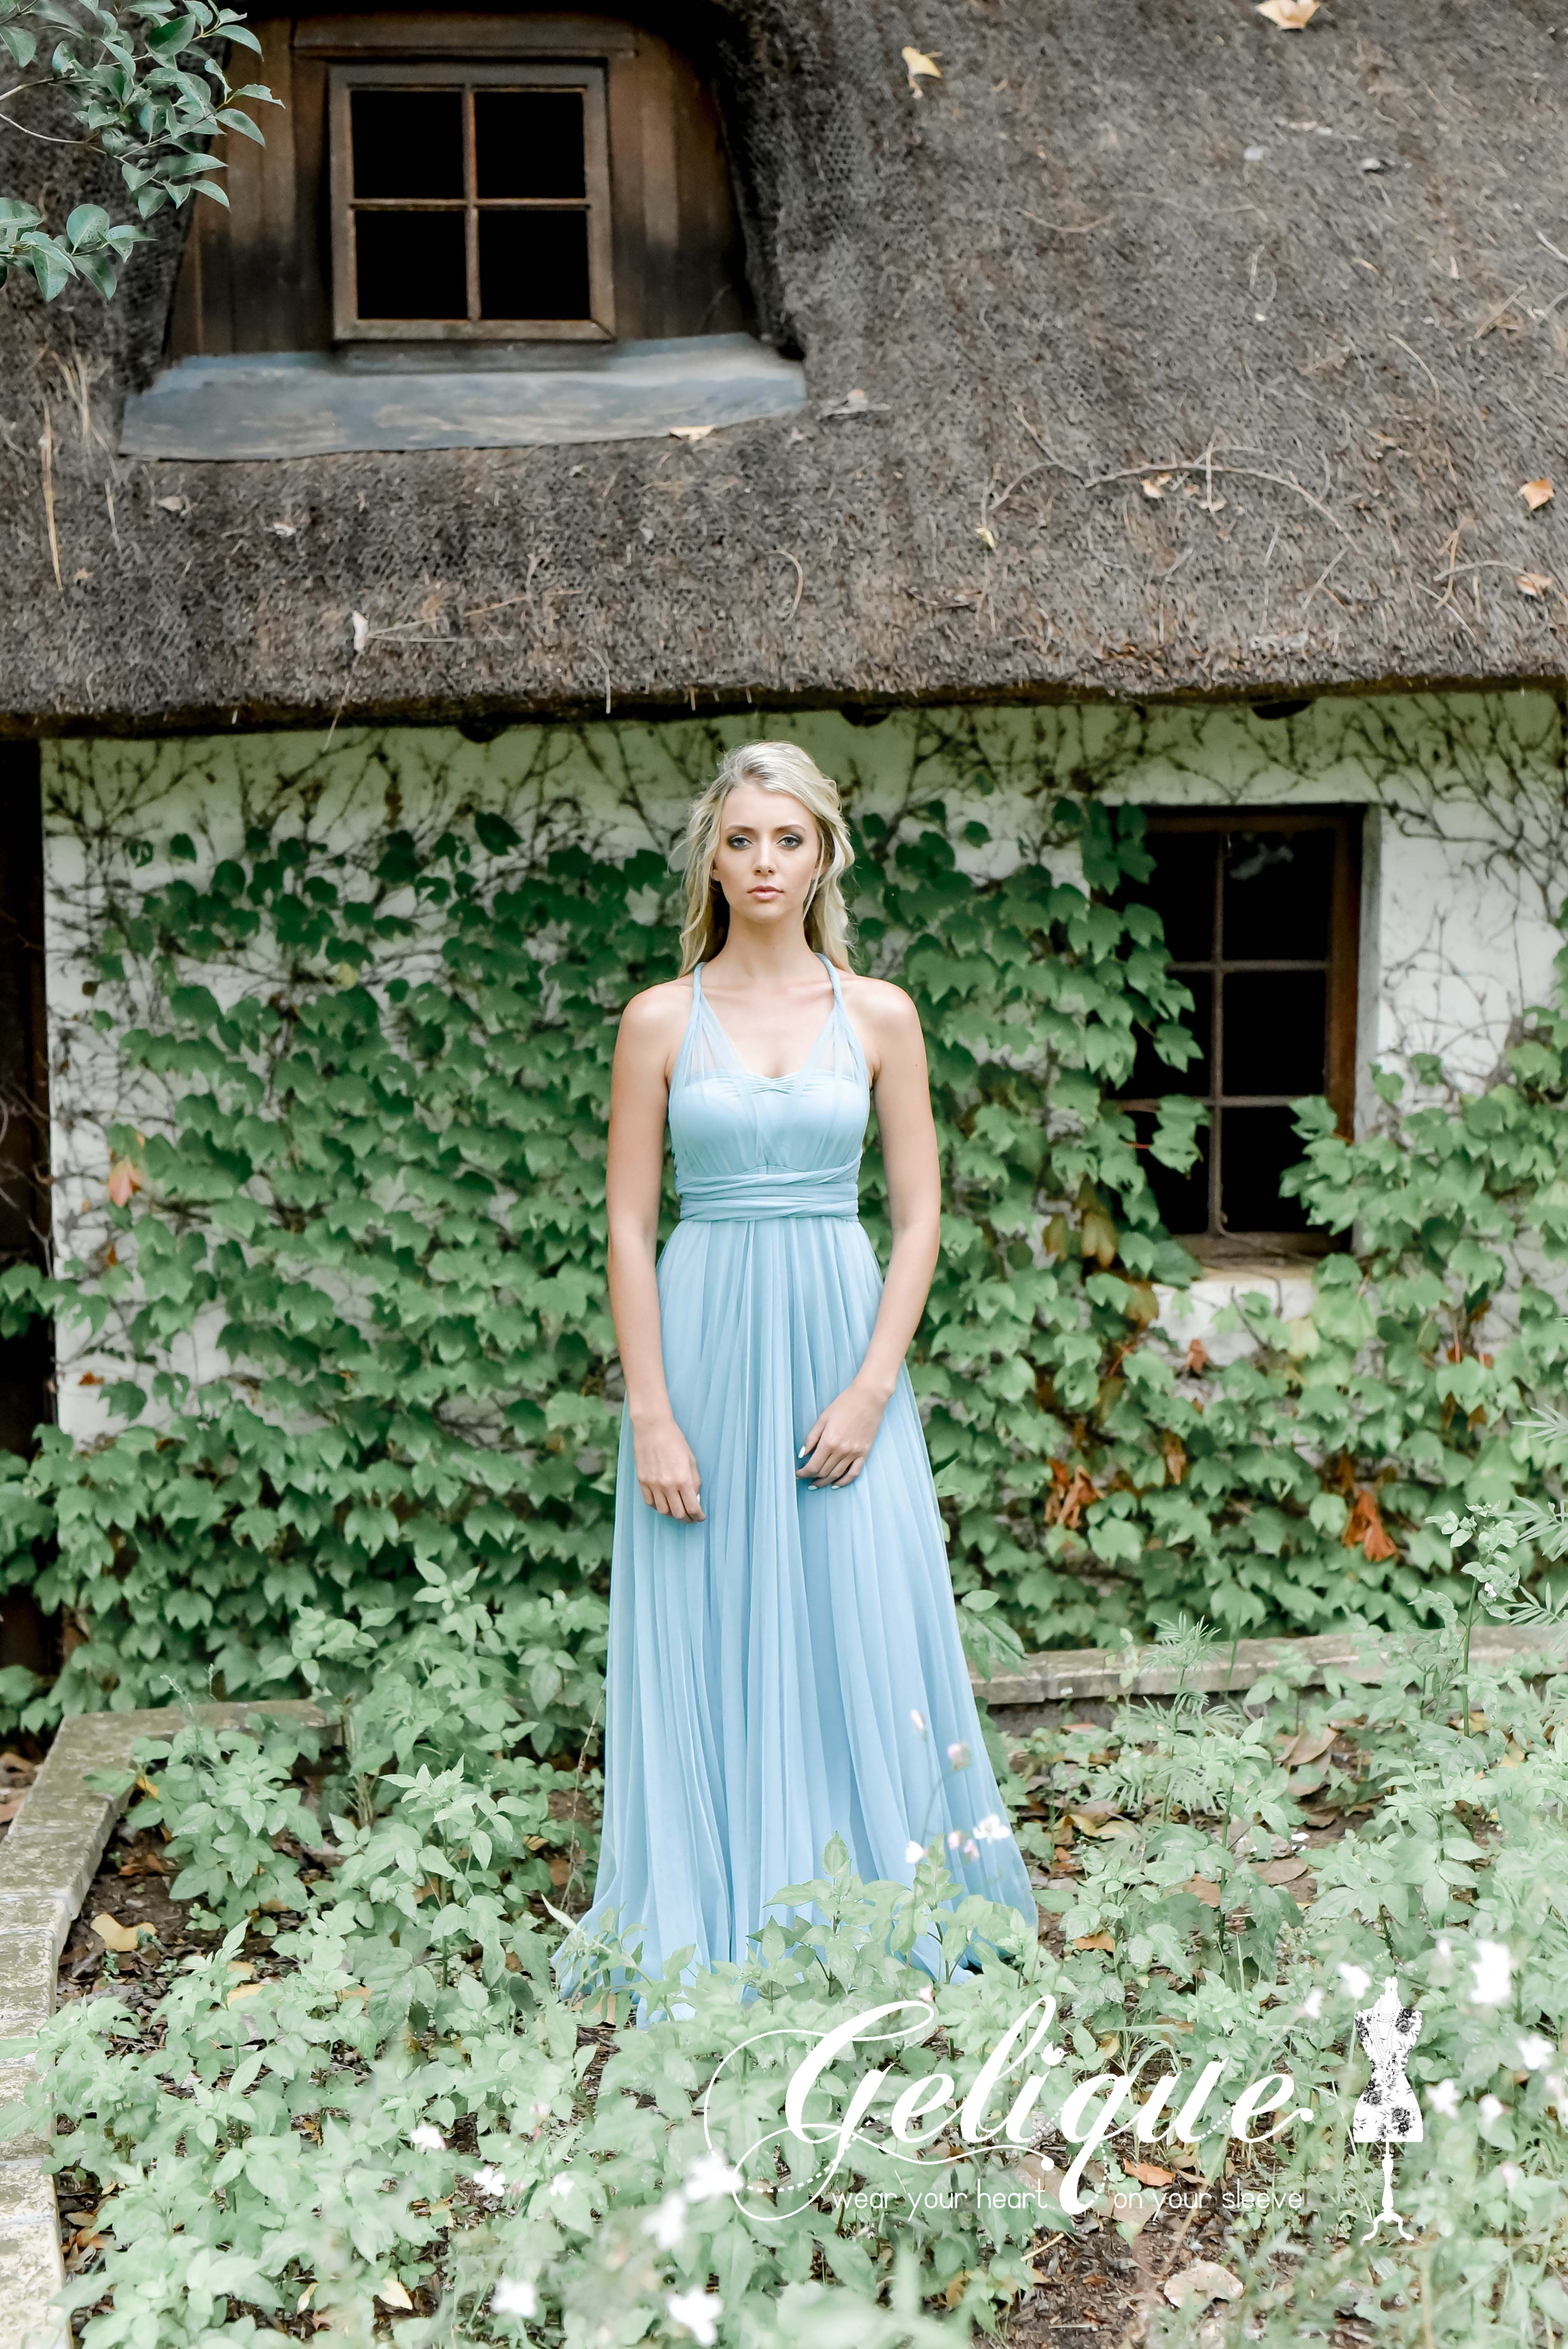 92466ec71af Edith dress from Gelique available at Brides of Somerset. Convertible  elements by adding soft tulle arms bands. This addition allows the dress to  be worn in ...